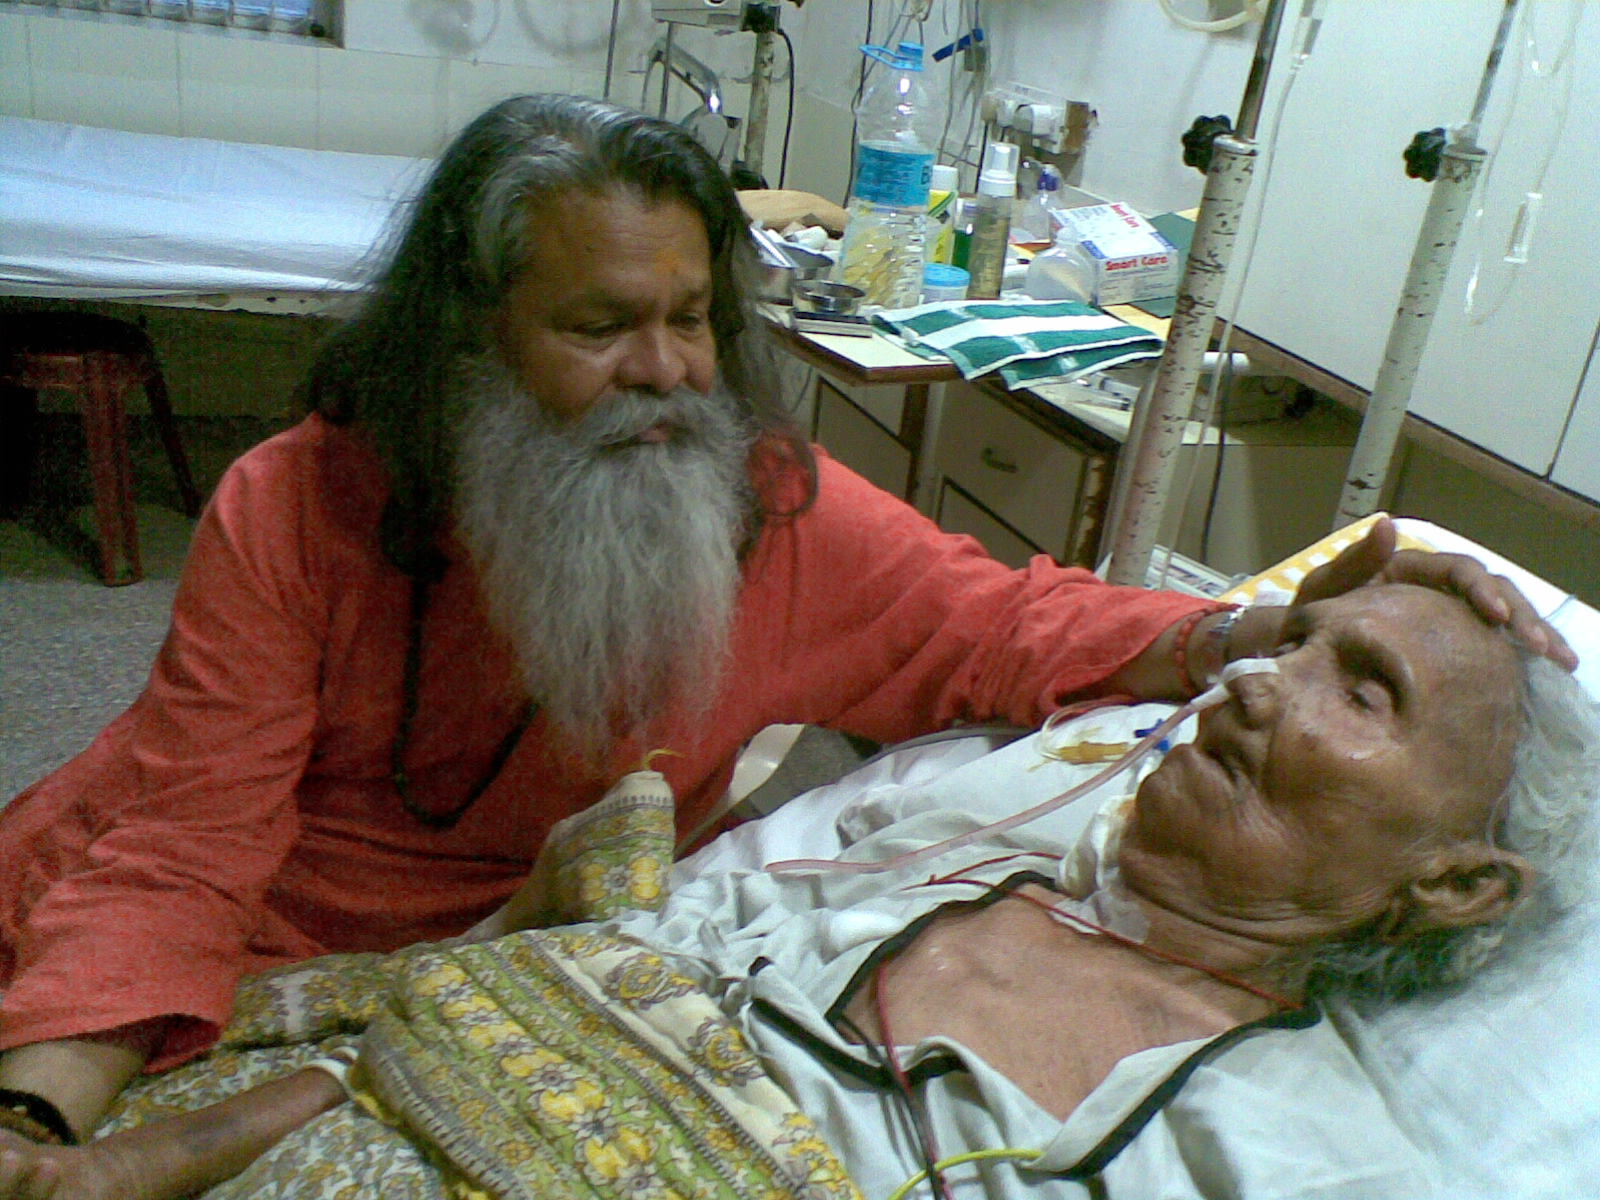 Mataji - the mother of H.H. Vishwaguru Mahamandaleshwar Paramhans Swami Maheshwarananda - is in hospital